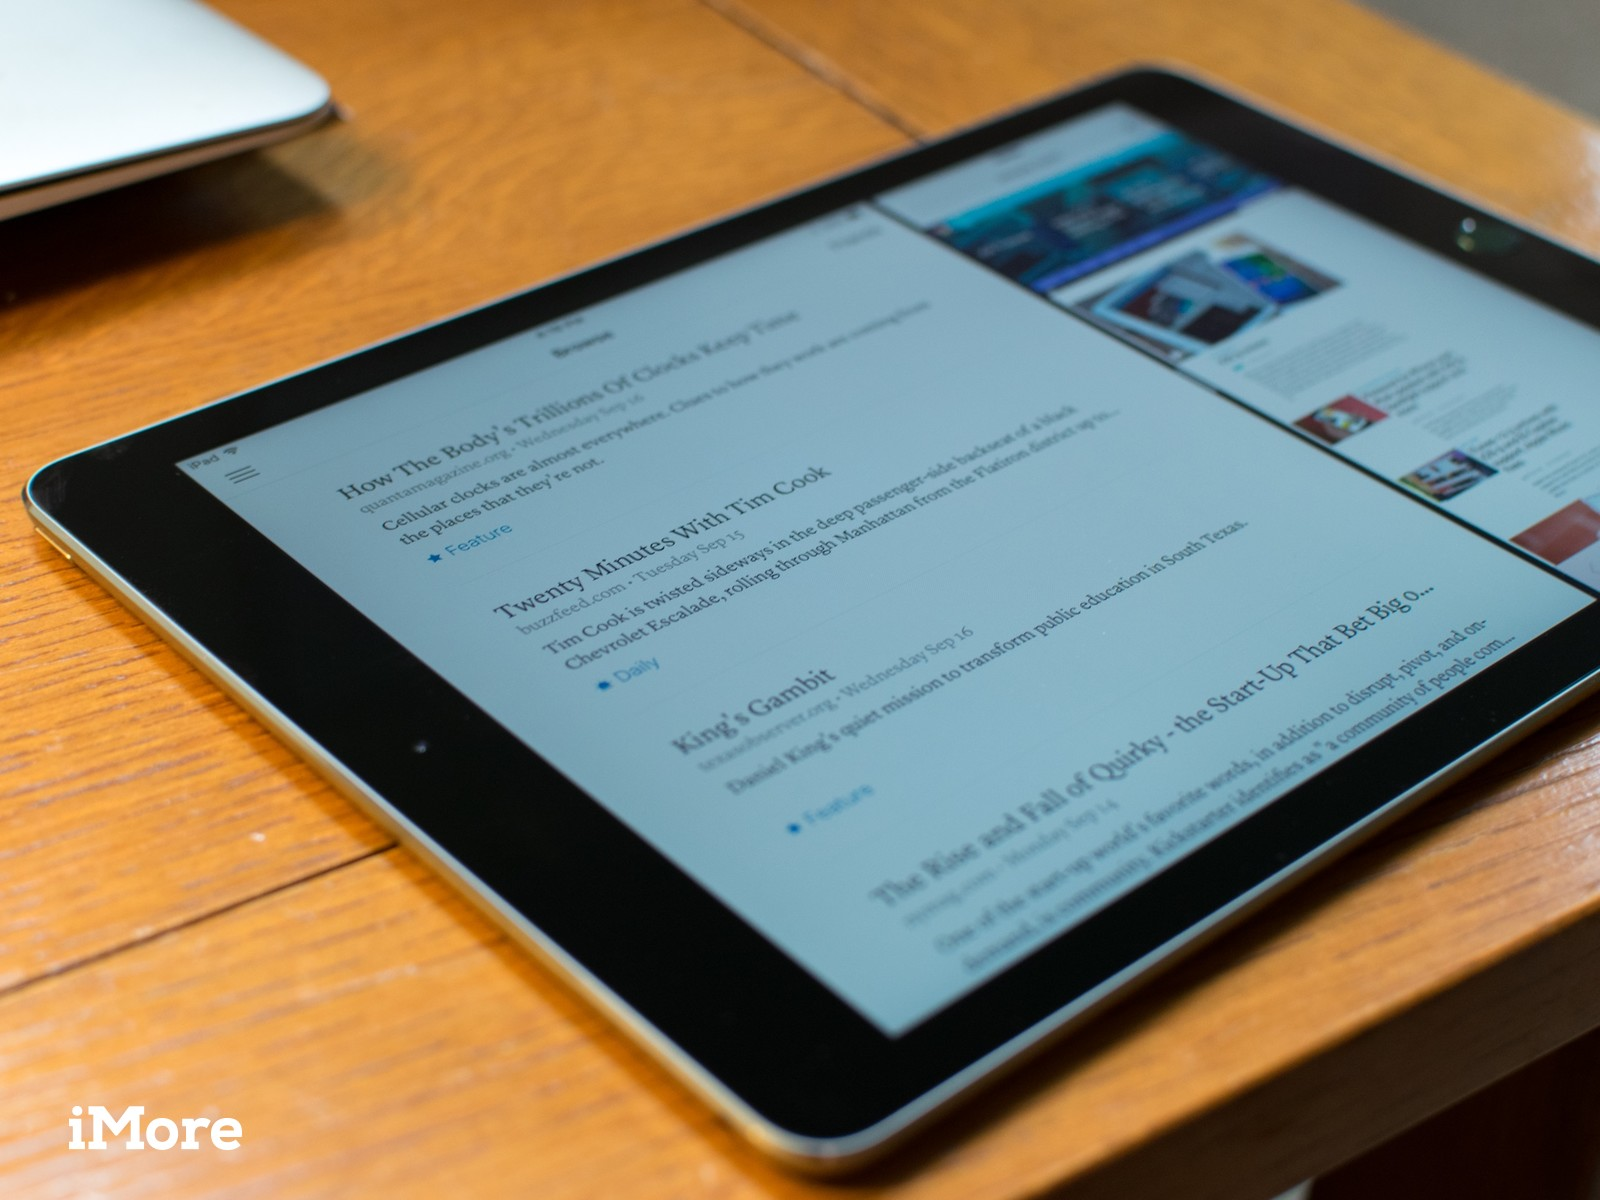 Instapaper adds iPad multitasking, picture-in-picture video support